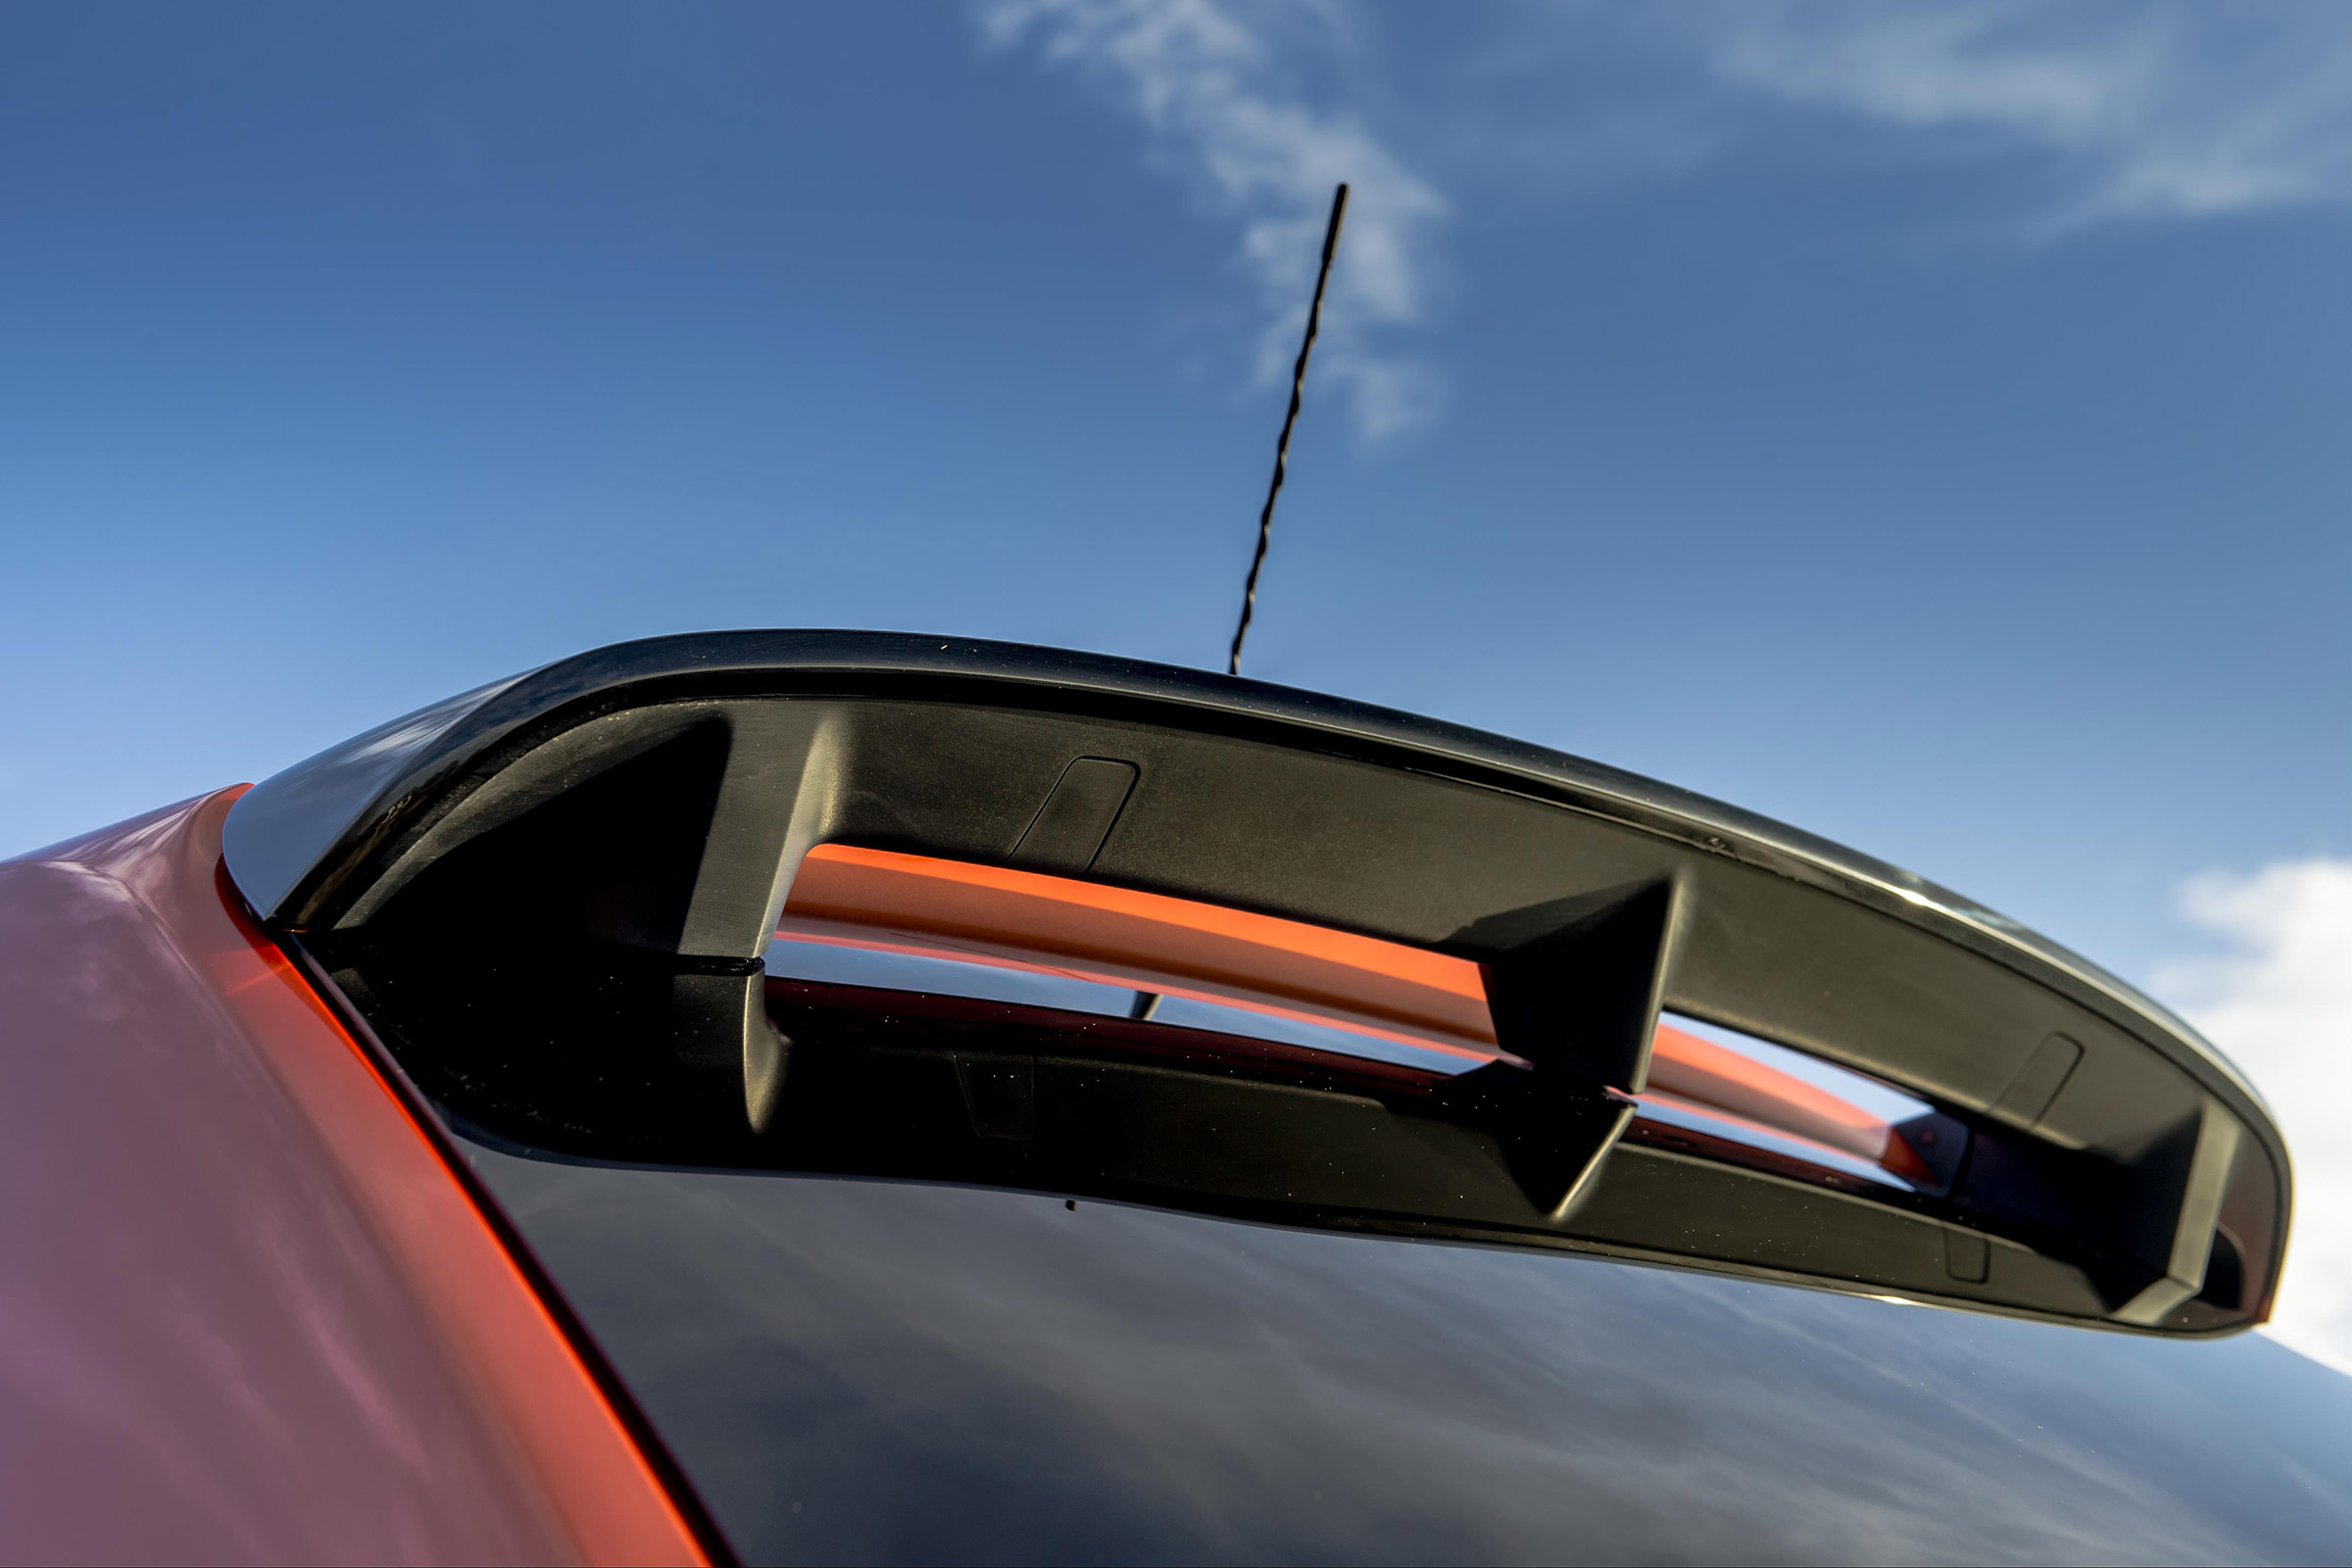 2017 Renault Twingo GT Exterior View Rear Spoiler (Photo 6 of 20)